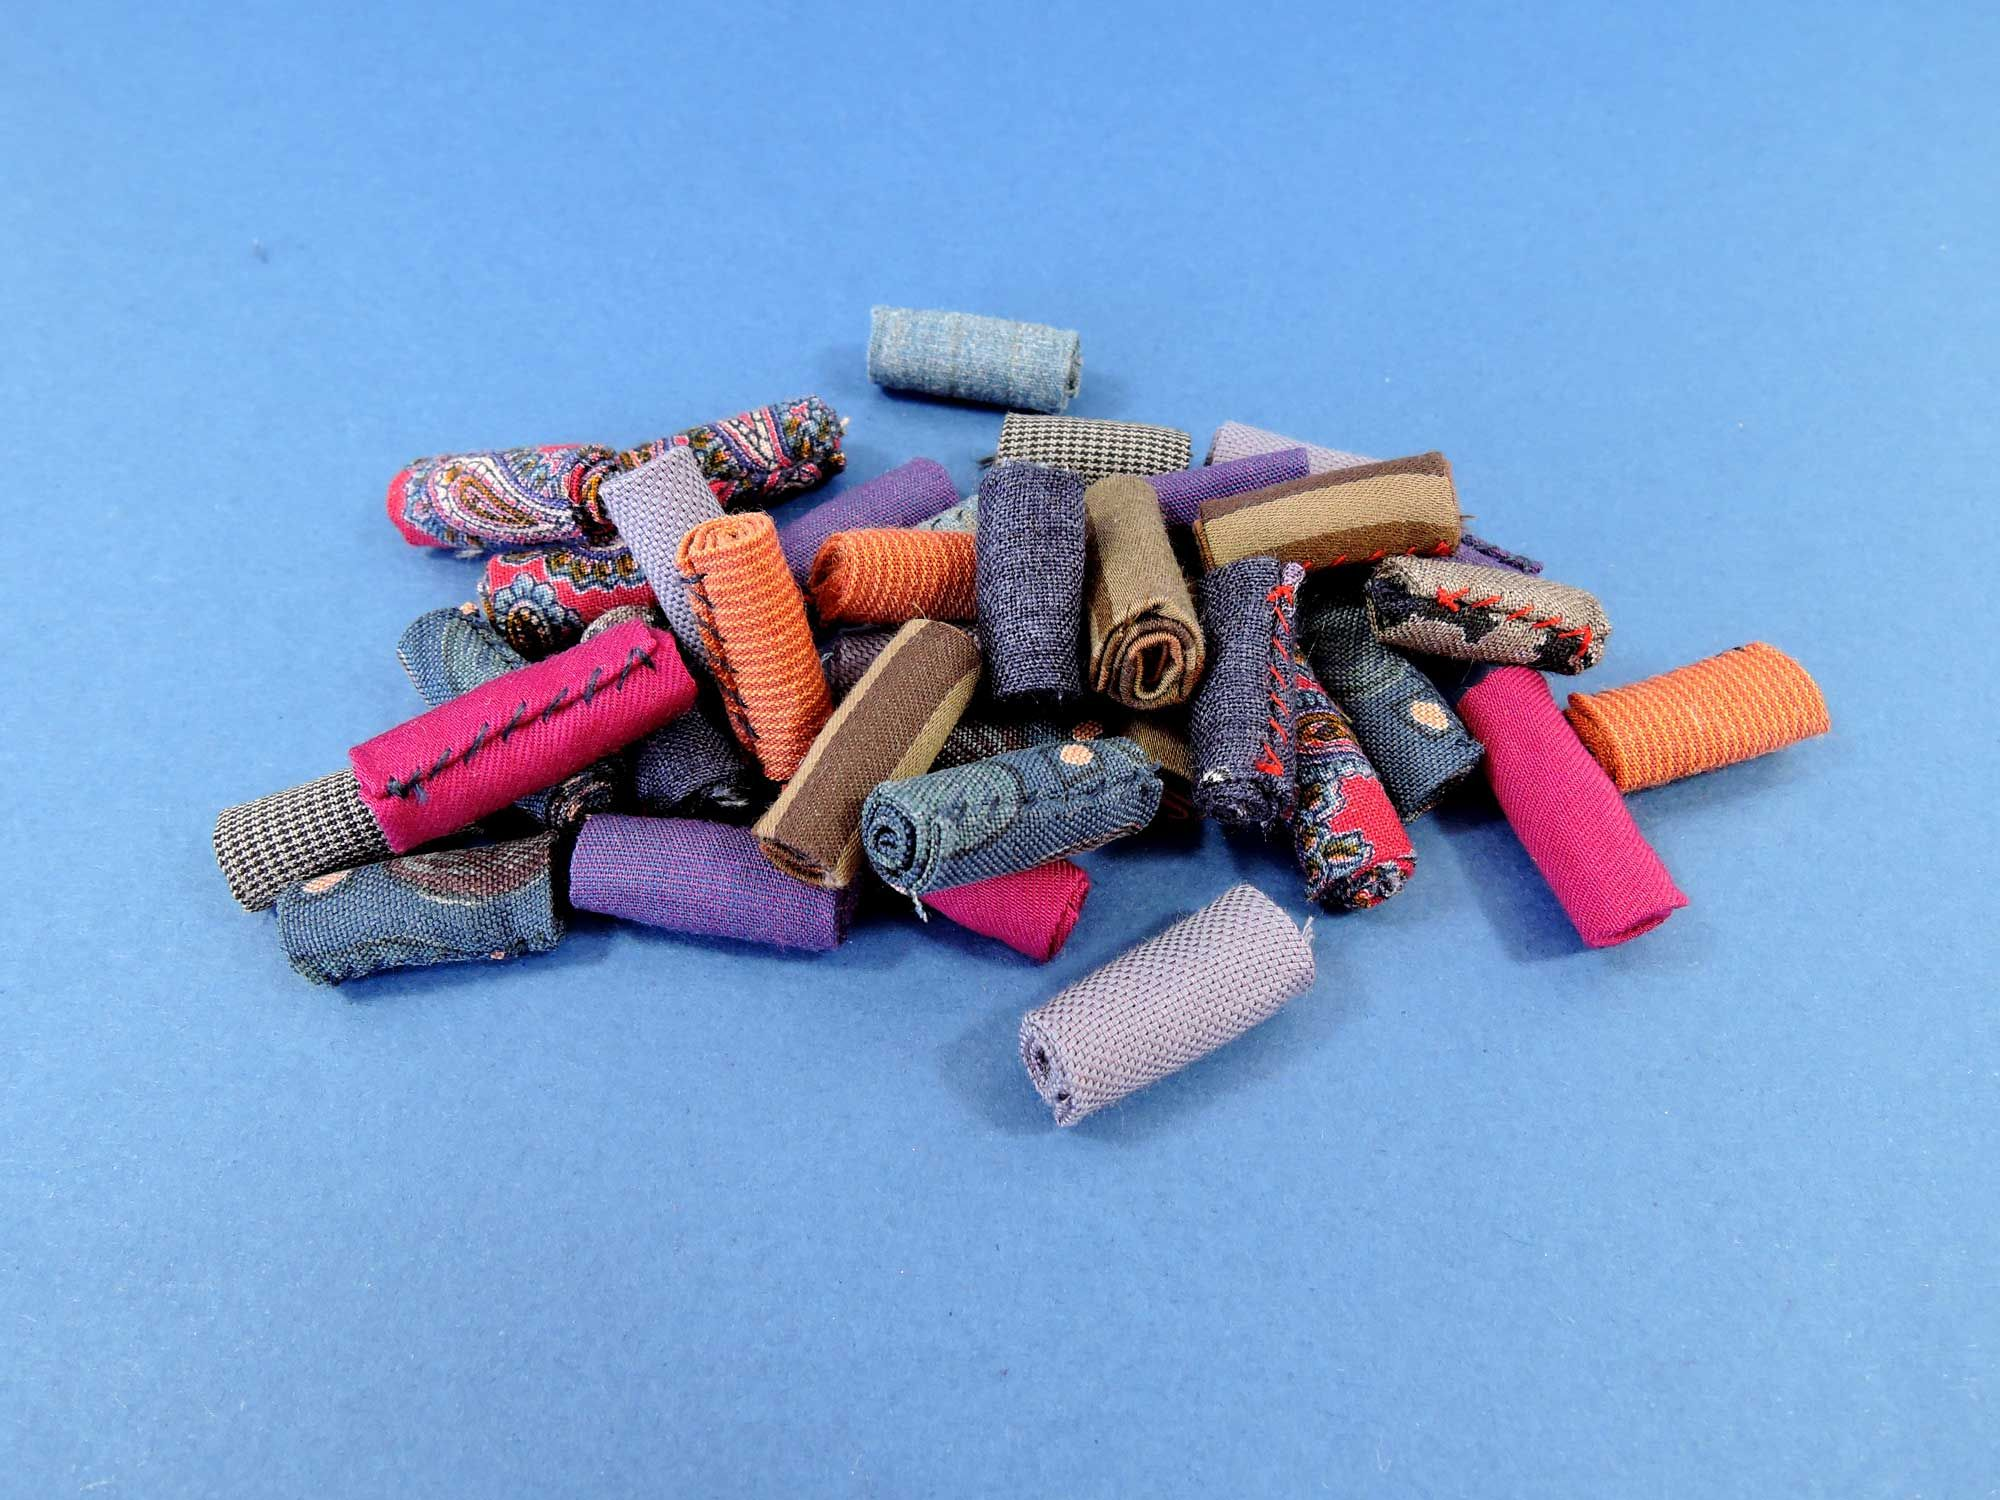 Fabric Beads, textile beads, beads handmade, beads sewing, beads to etsy, cool fabric beads. This is handmade beads made of materials. Recyclable materials can be used.